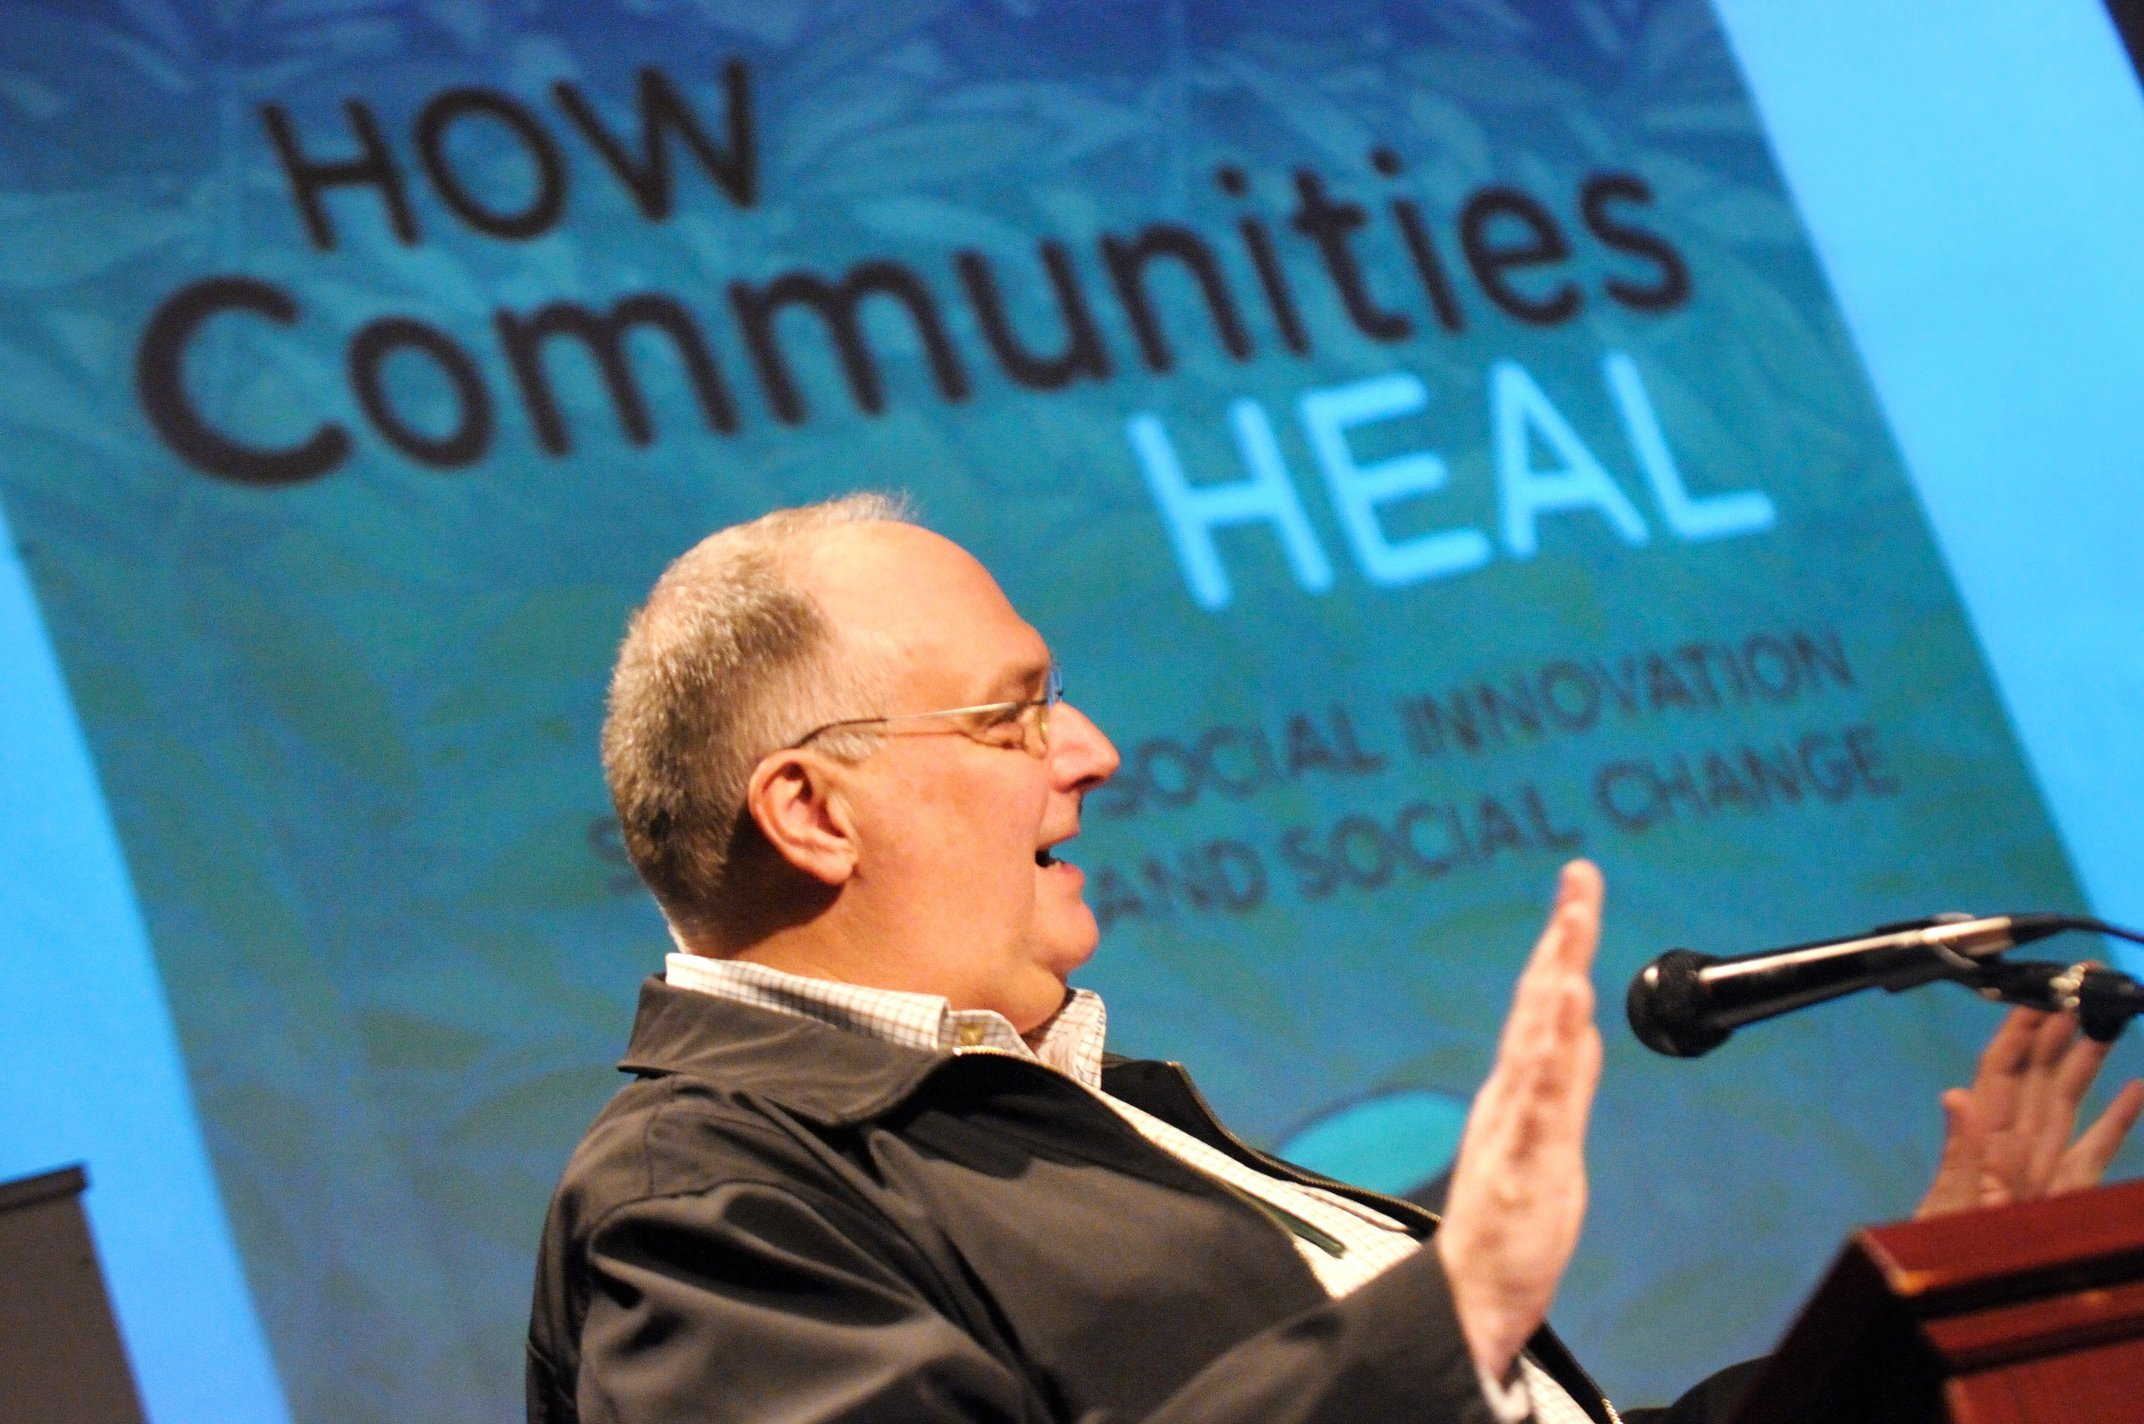 How_Communities_Heal_-_Wimmera_Volunteerfest_Horsham_Victoria_July_2012.jpg